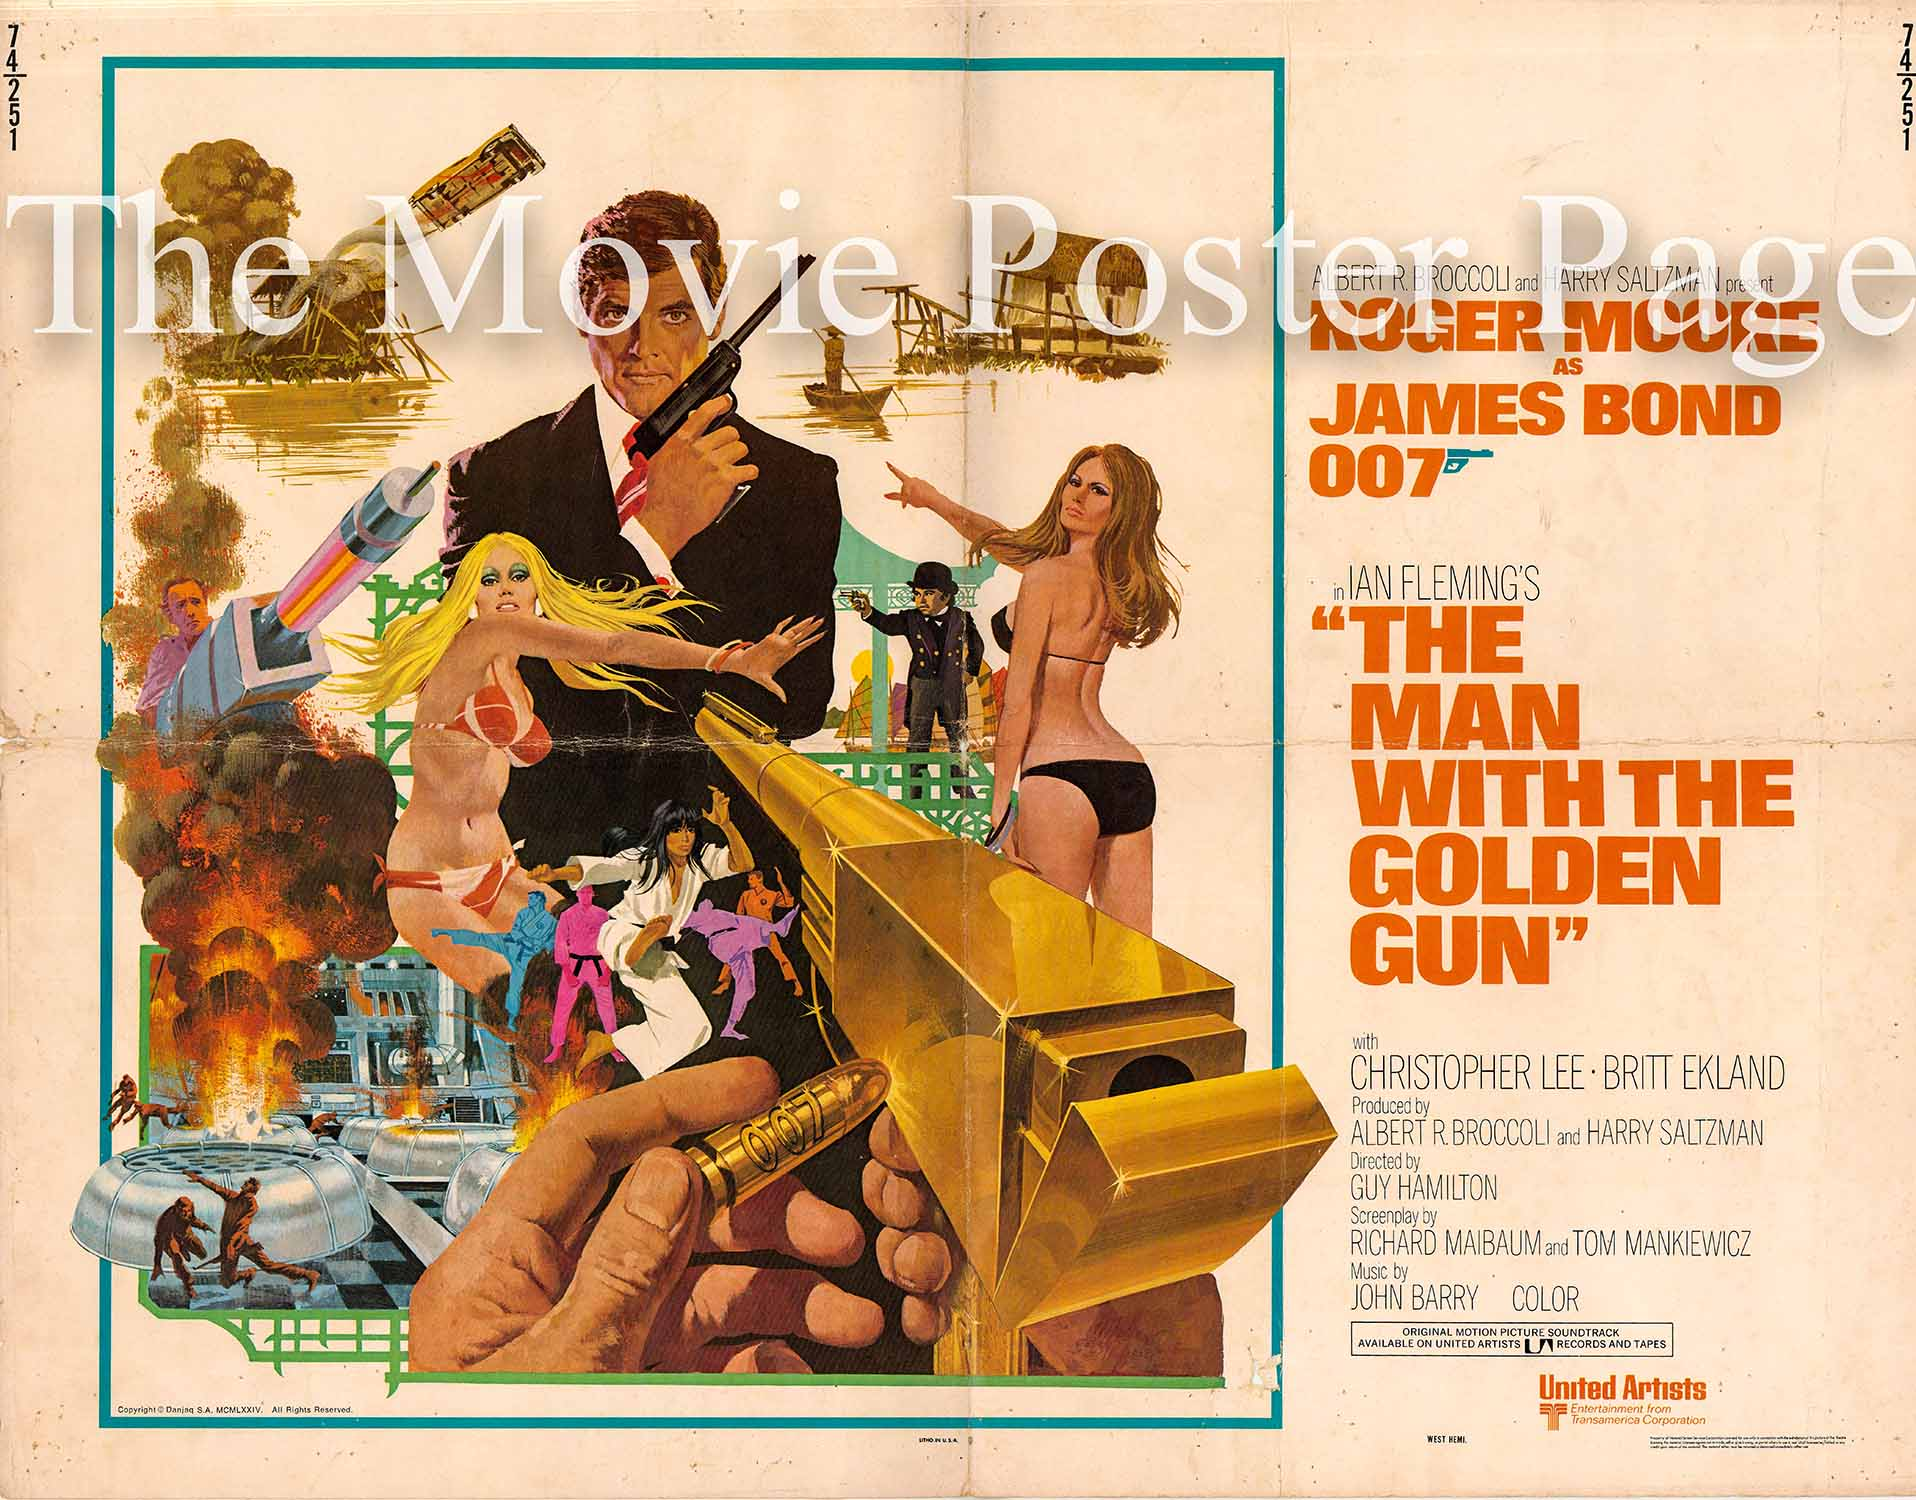 Pictured is a US half-sheet promotional poster for the 1974 Guy Hamilton film The Man with the Golden Gun starring Roger Moore.